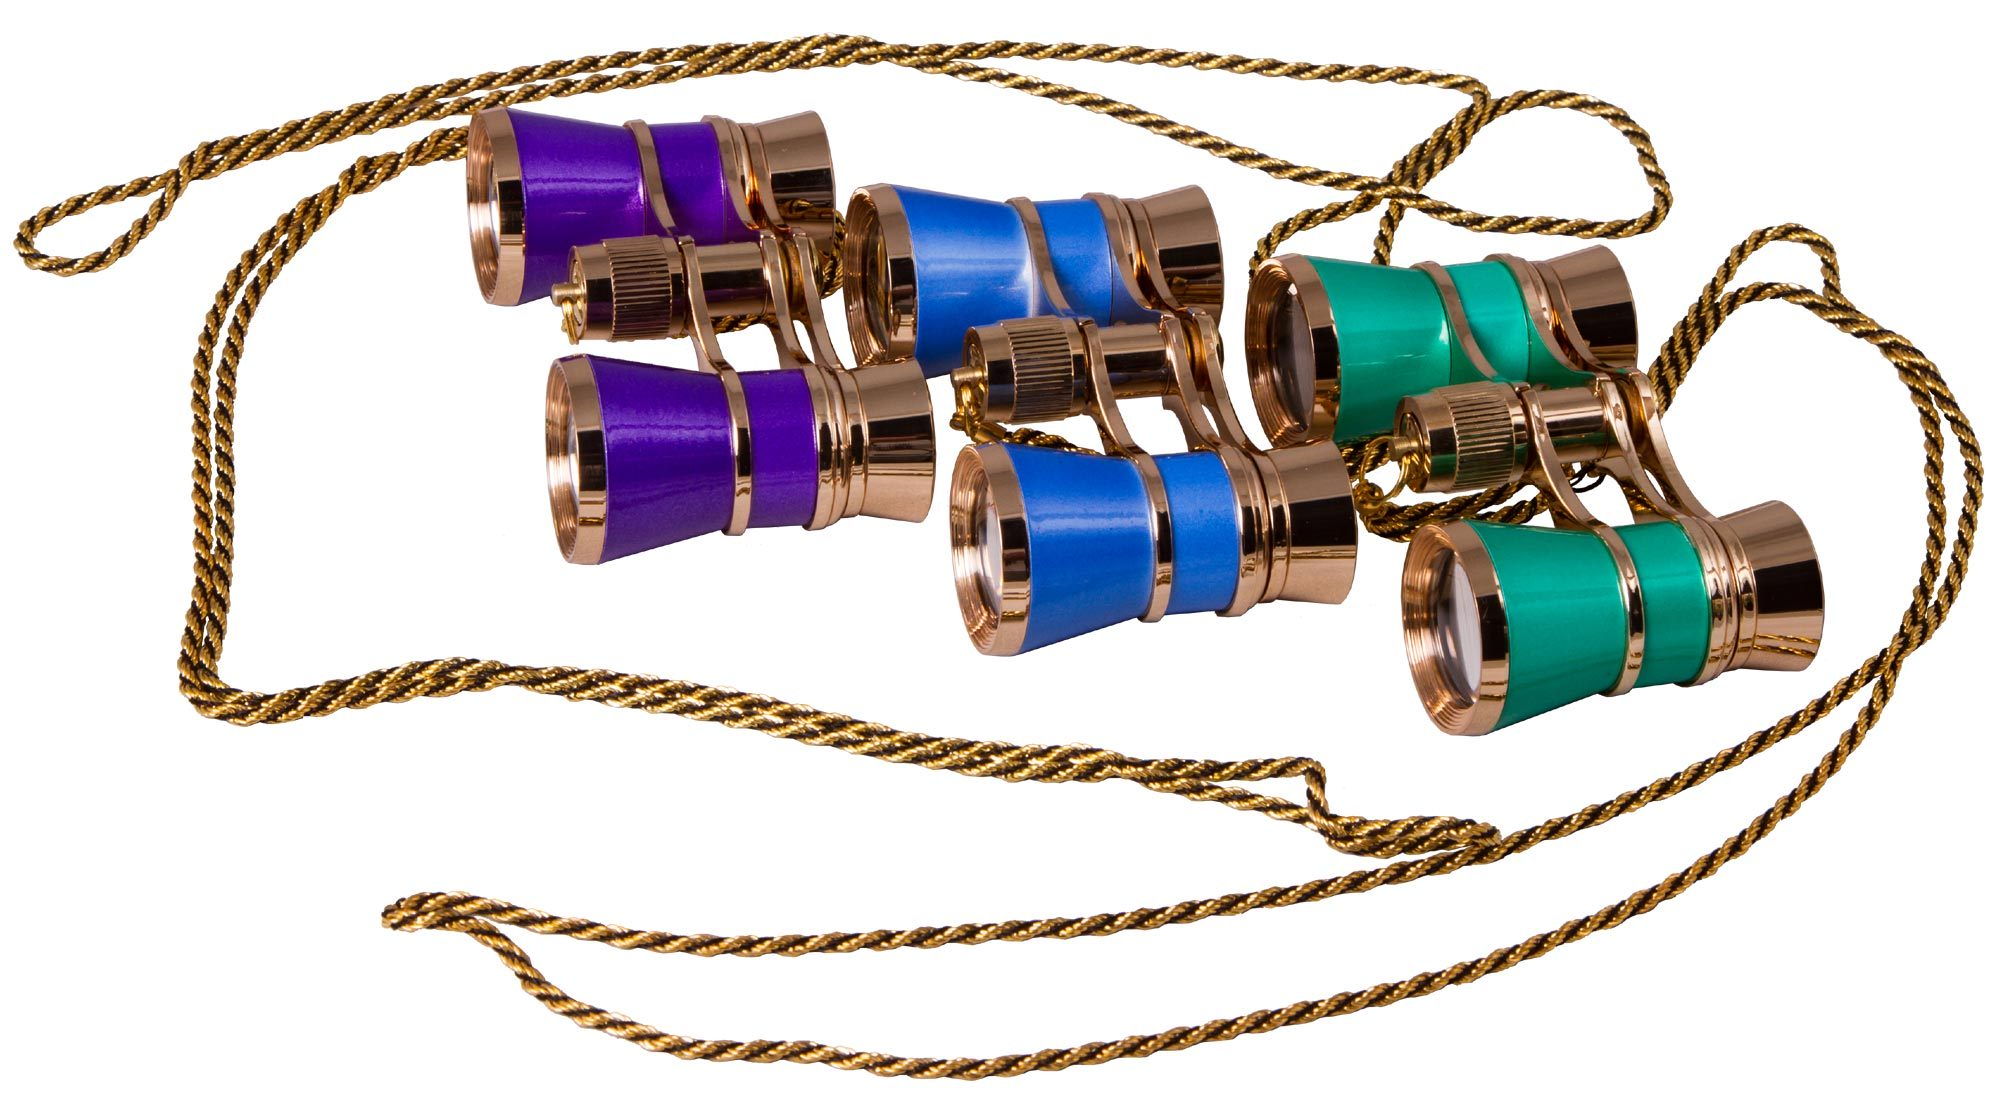 Levenhuk Broadway 325C Blue Wave Opera Glasses with a chain image